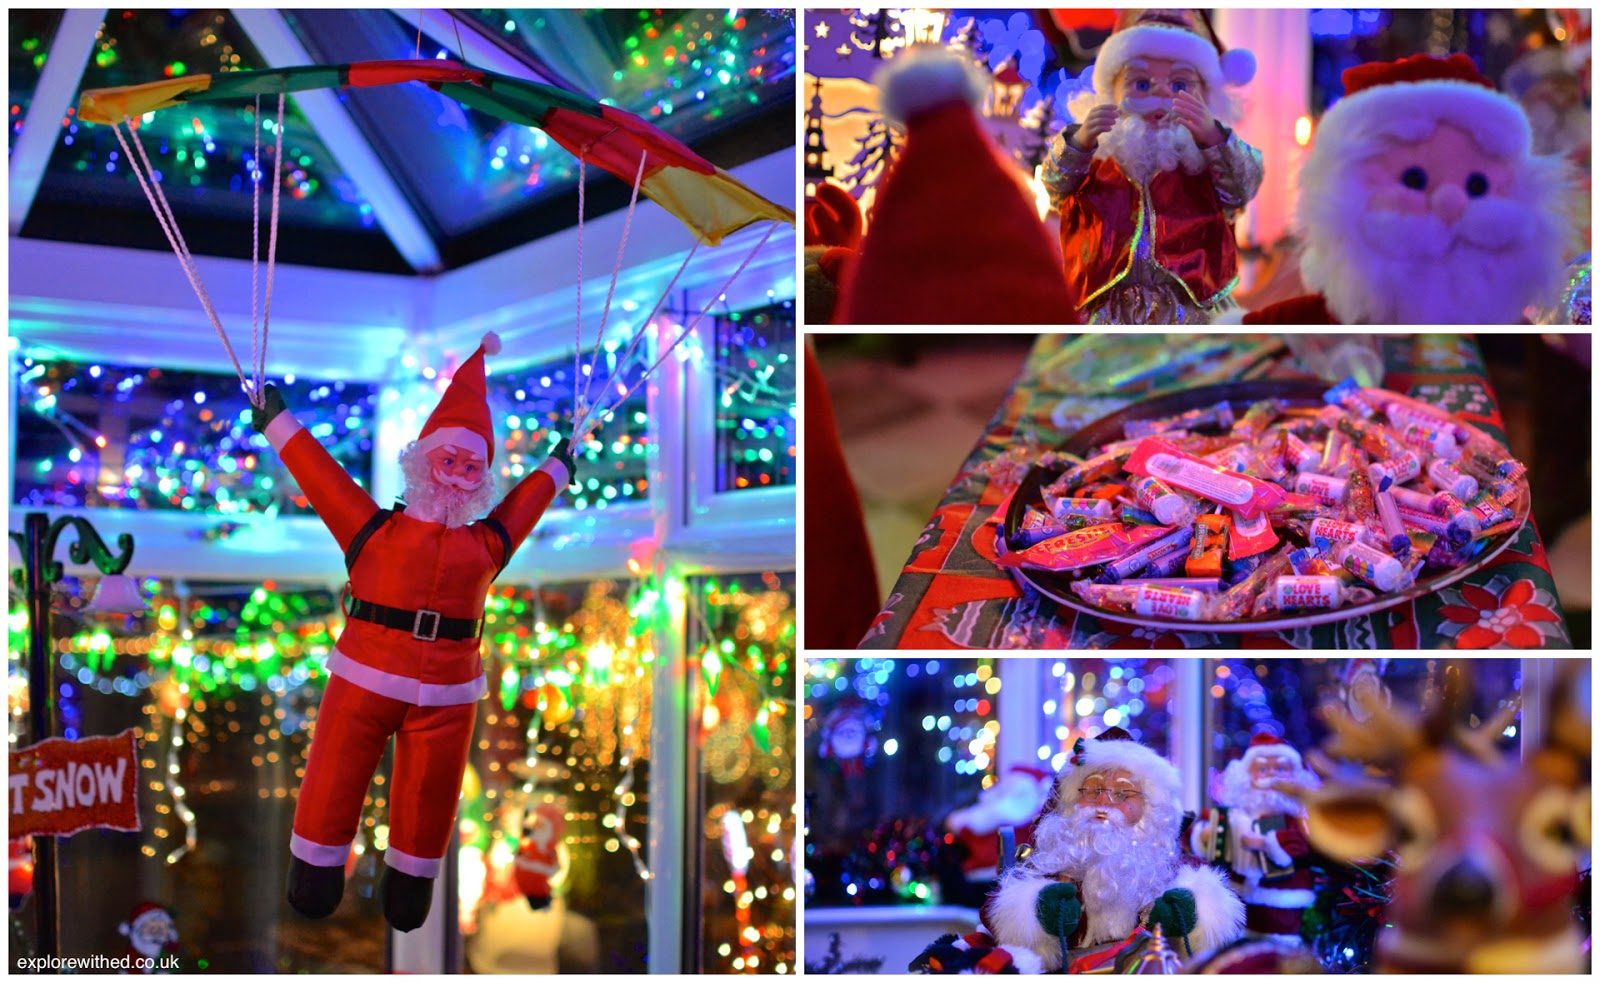 Inside the Christmas House in Newport